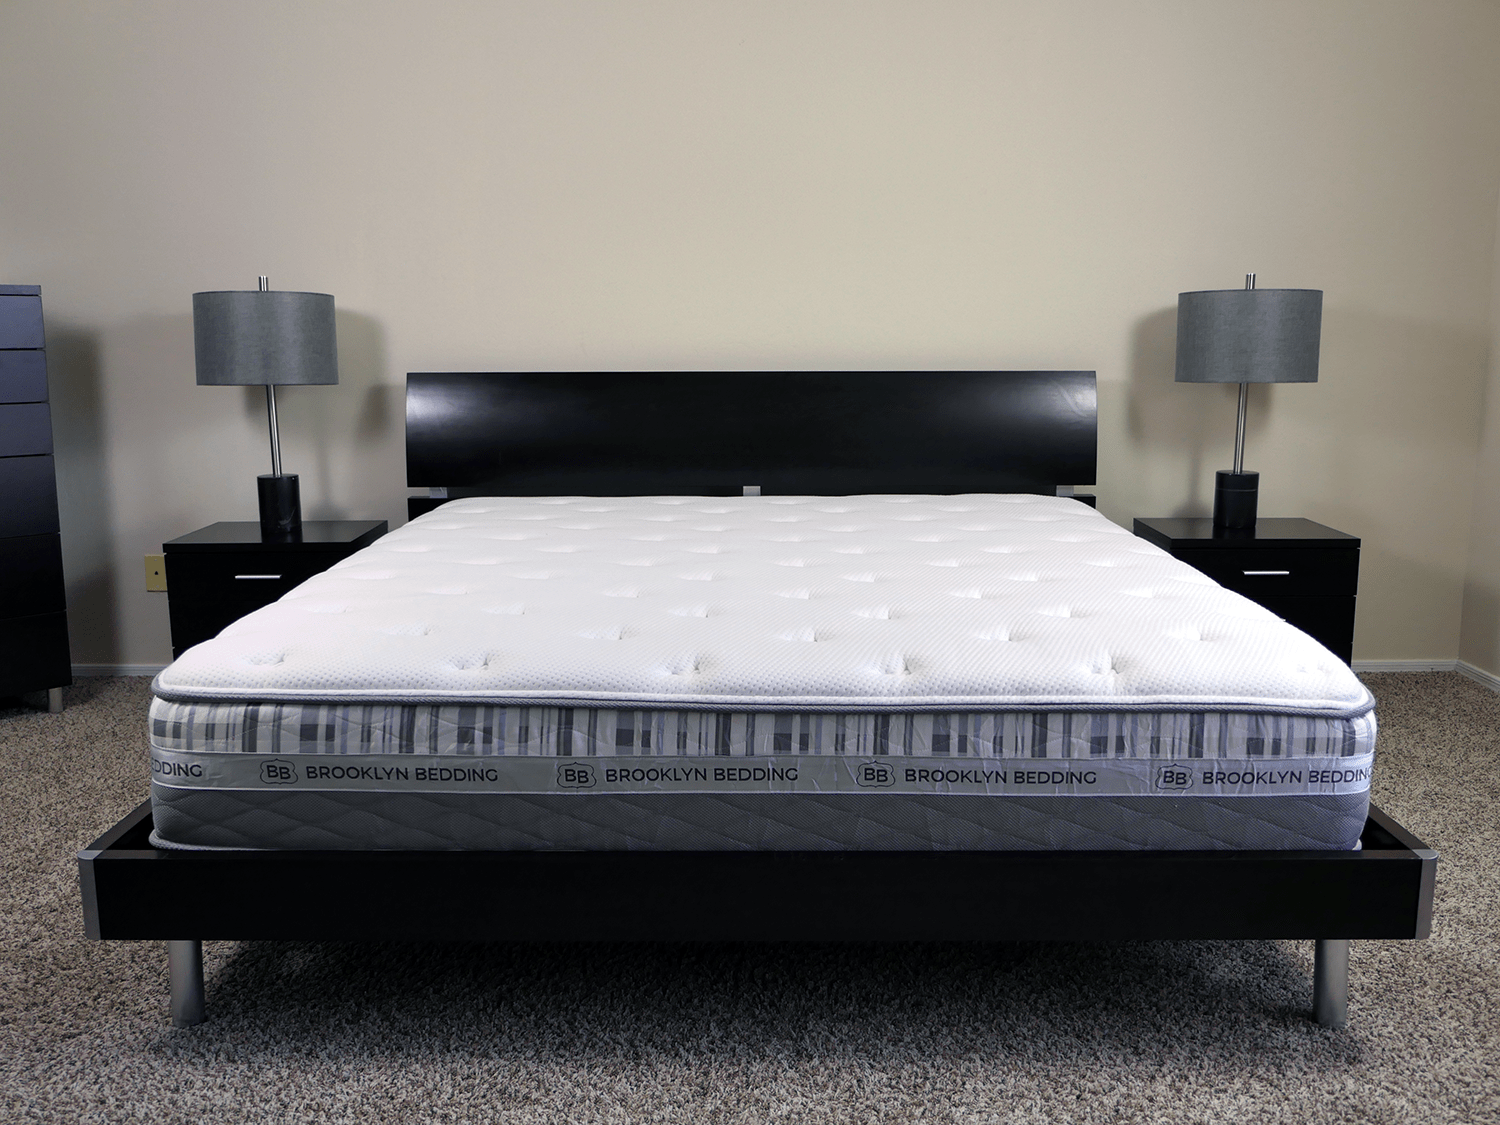 Brooklyn bedding vs casper mattress review sleepopolis for Brooklyn bedding reviews